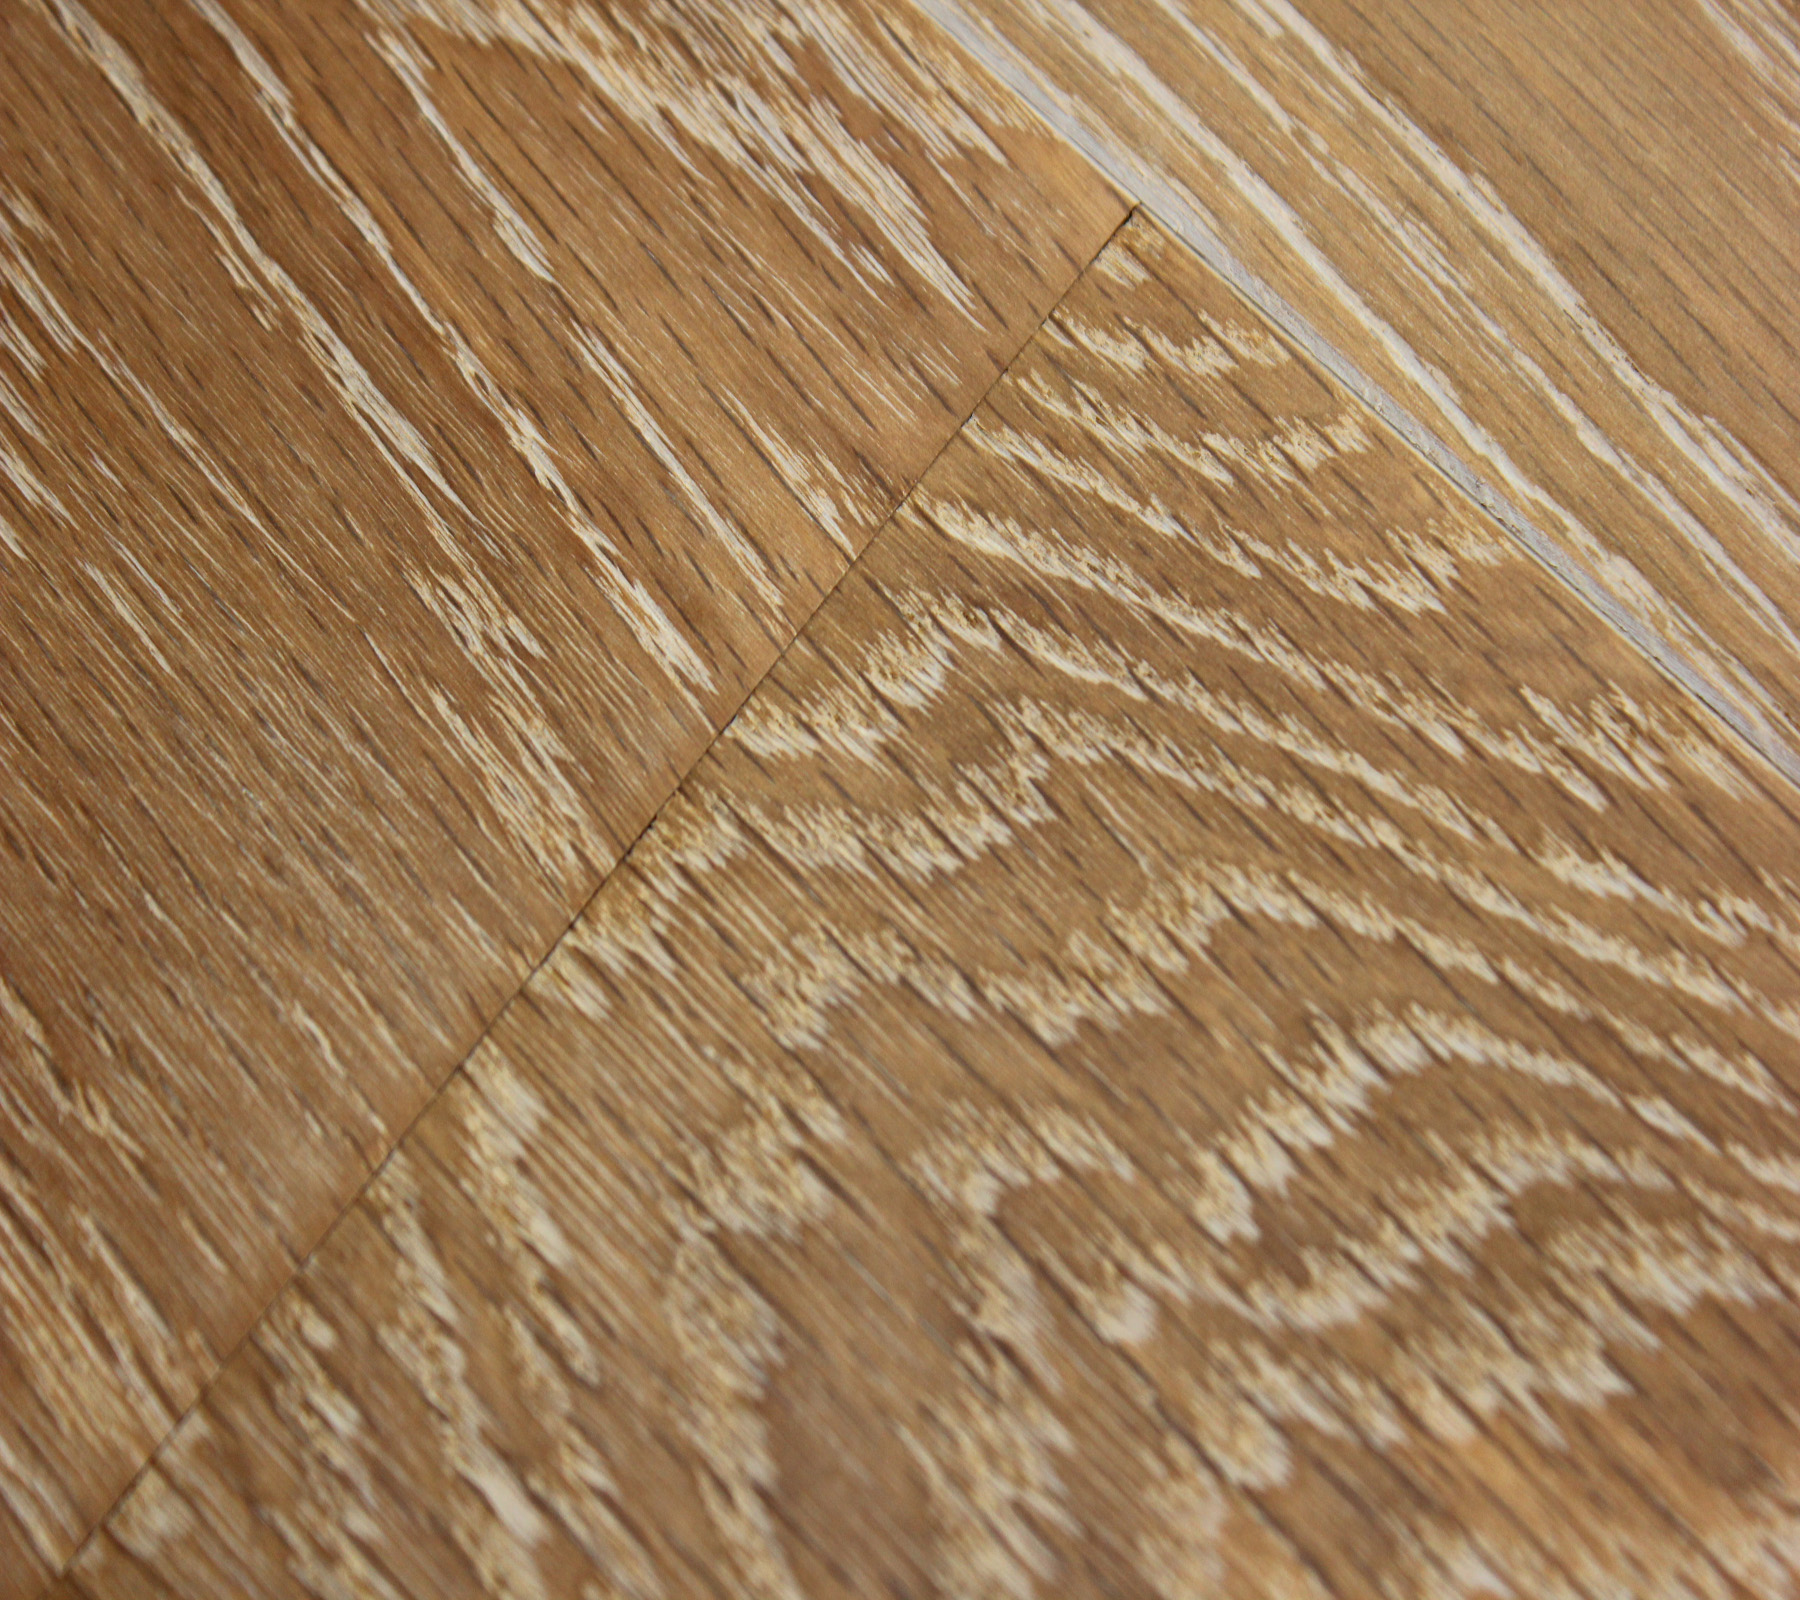 Brushed and Waxed Oak